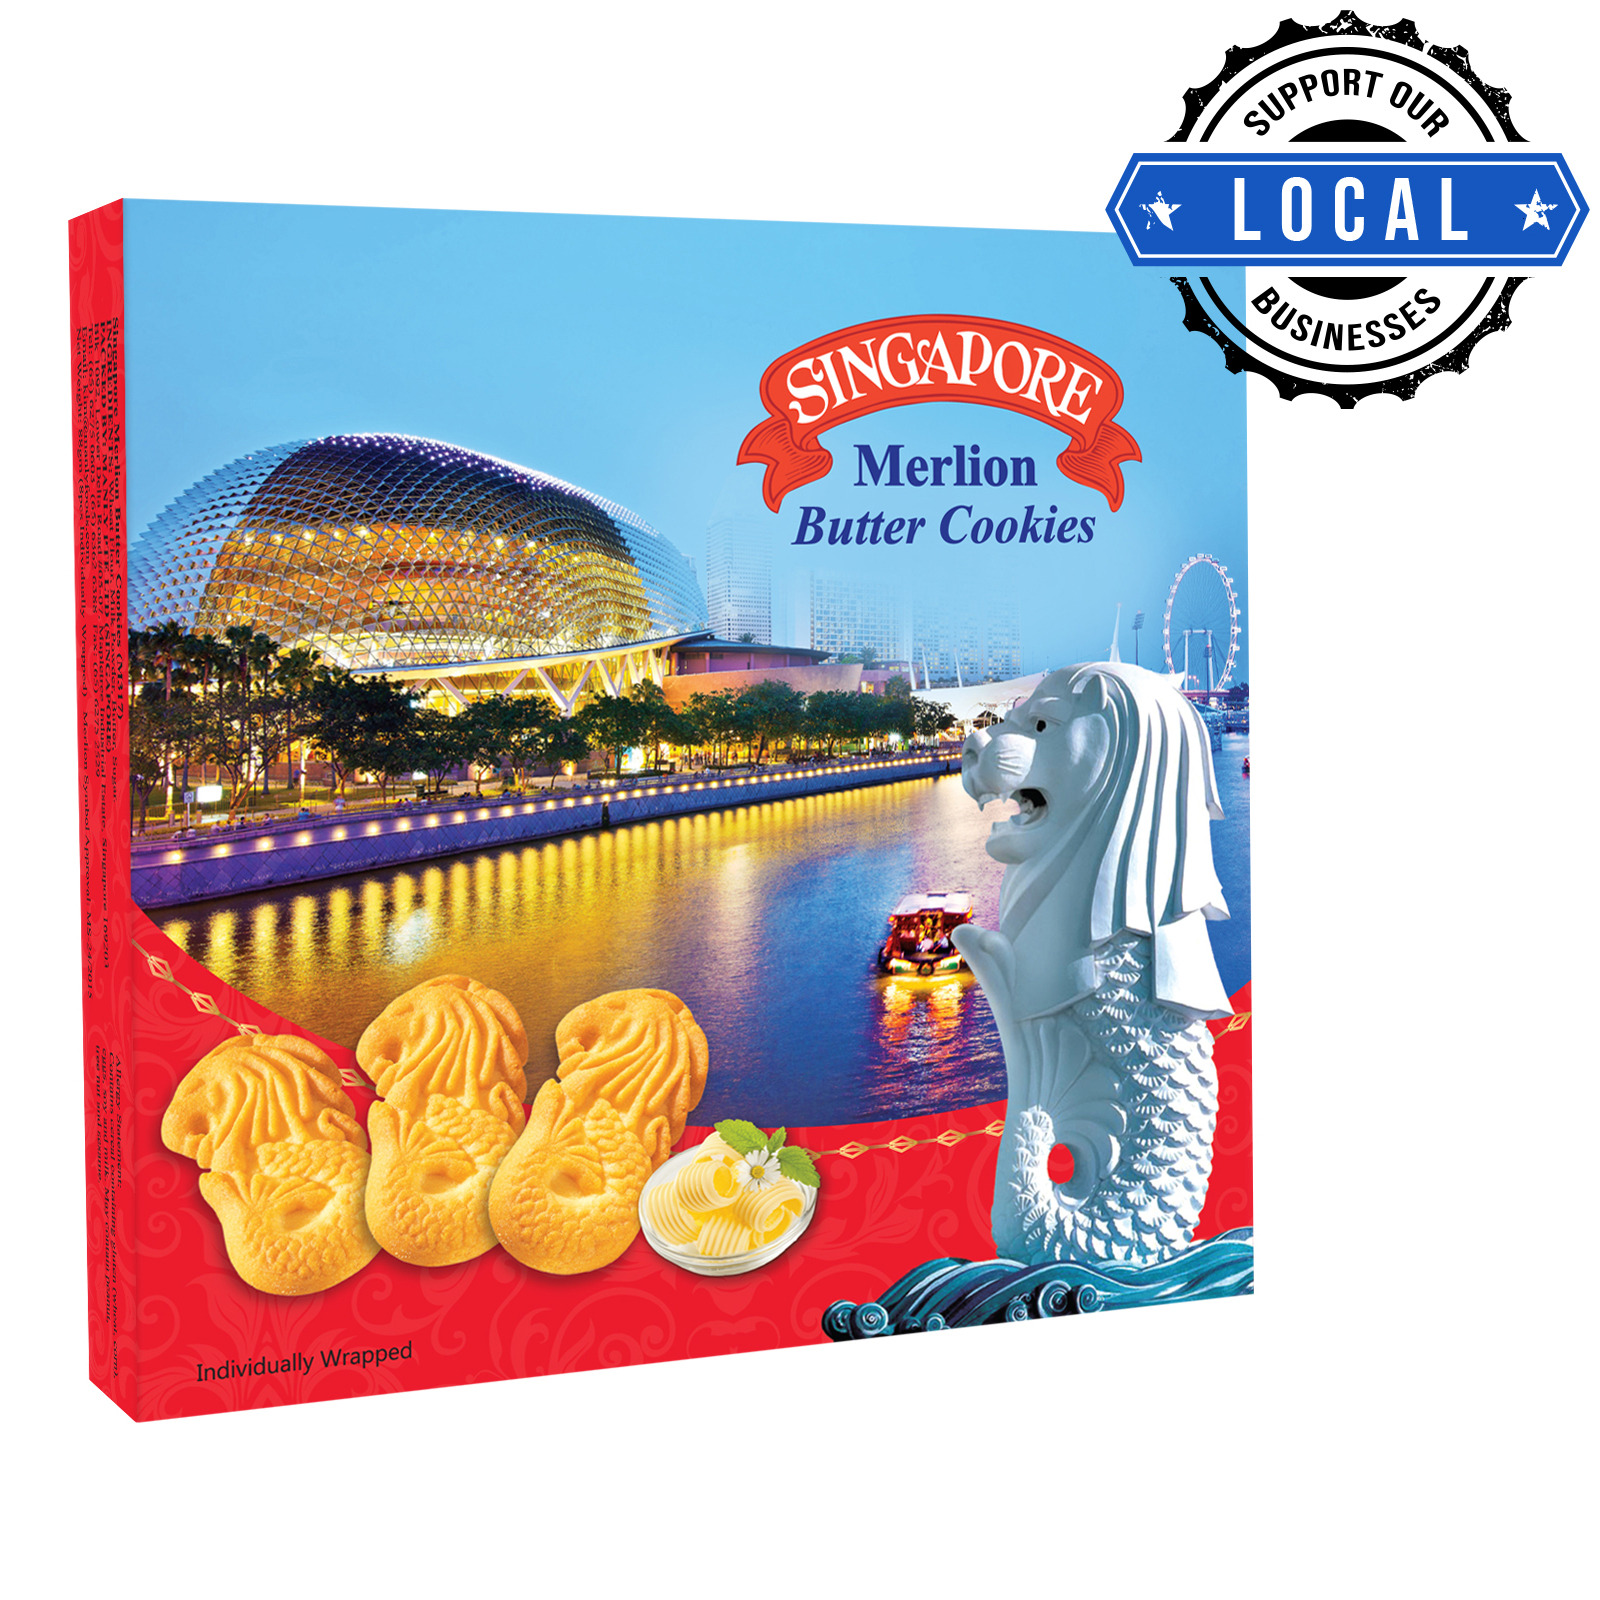 Manly Singapore Merlion Butter Cookies - Butter